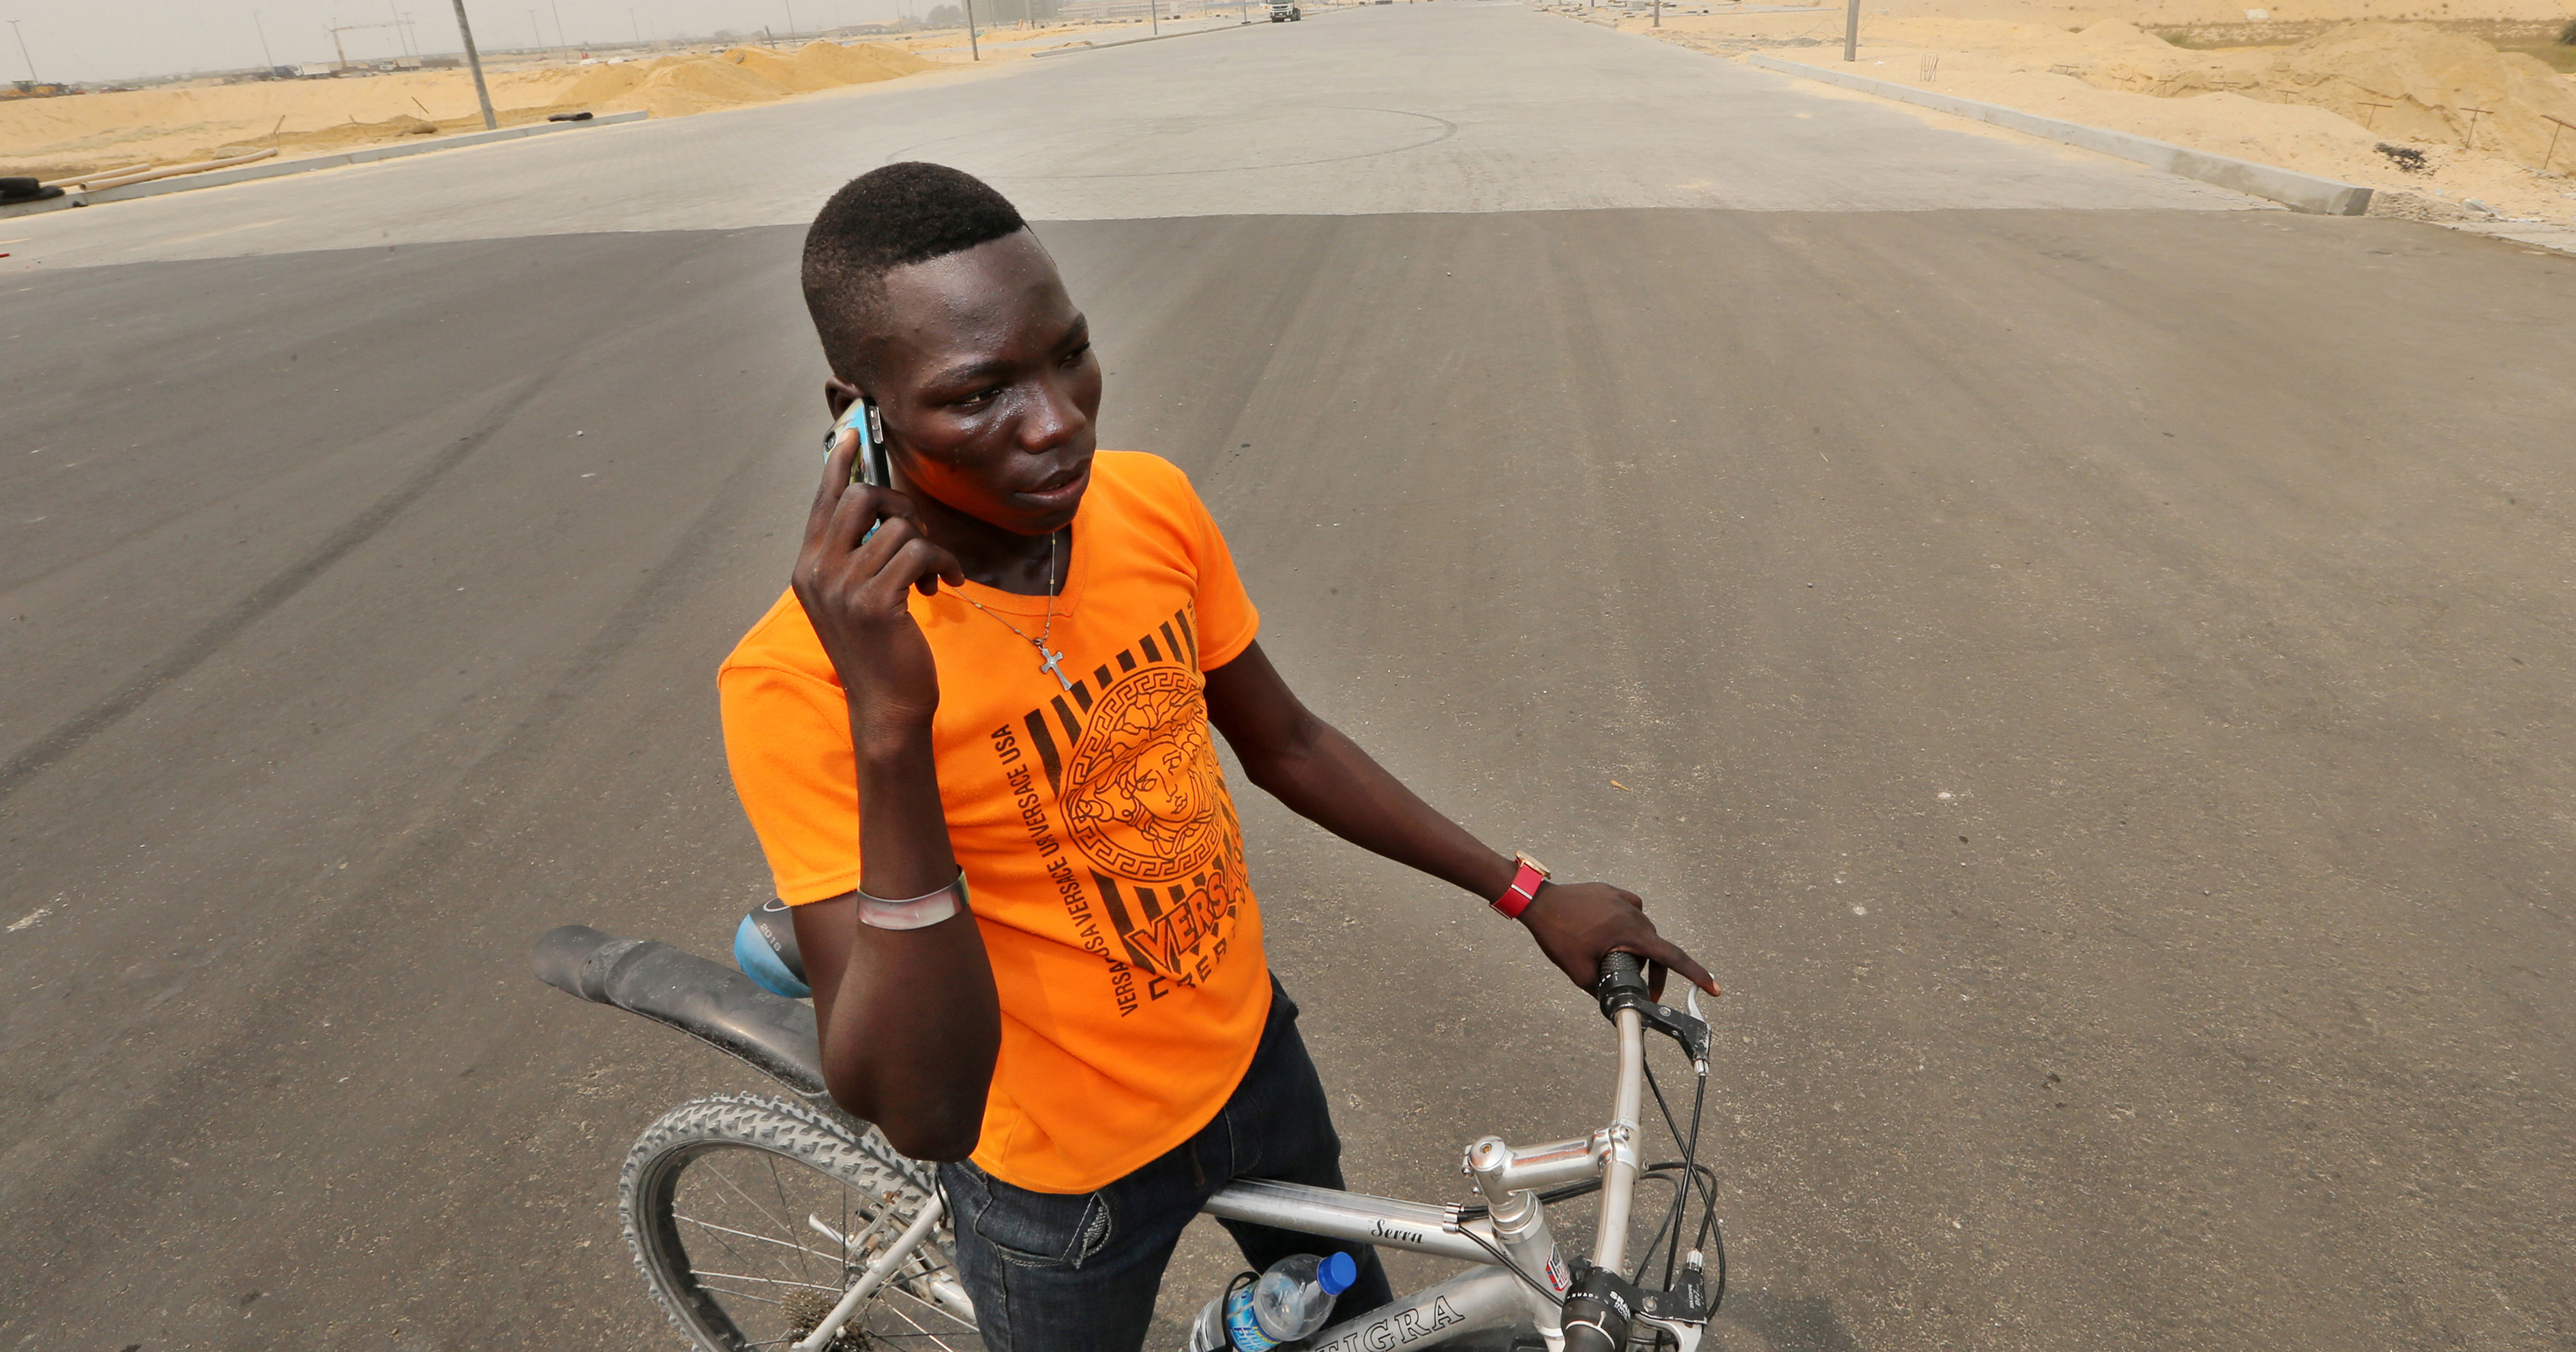 A cyclist stops to make a mobile phone call on a newly surfaced boulevard at the Eko Atlantic City site, developed by Eko Atlantic, near Victoria Island in Lagos, Nigeria on Feb. 12, 2016.